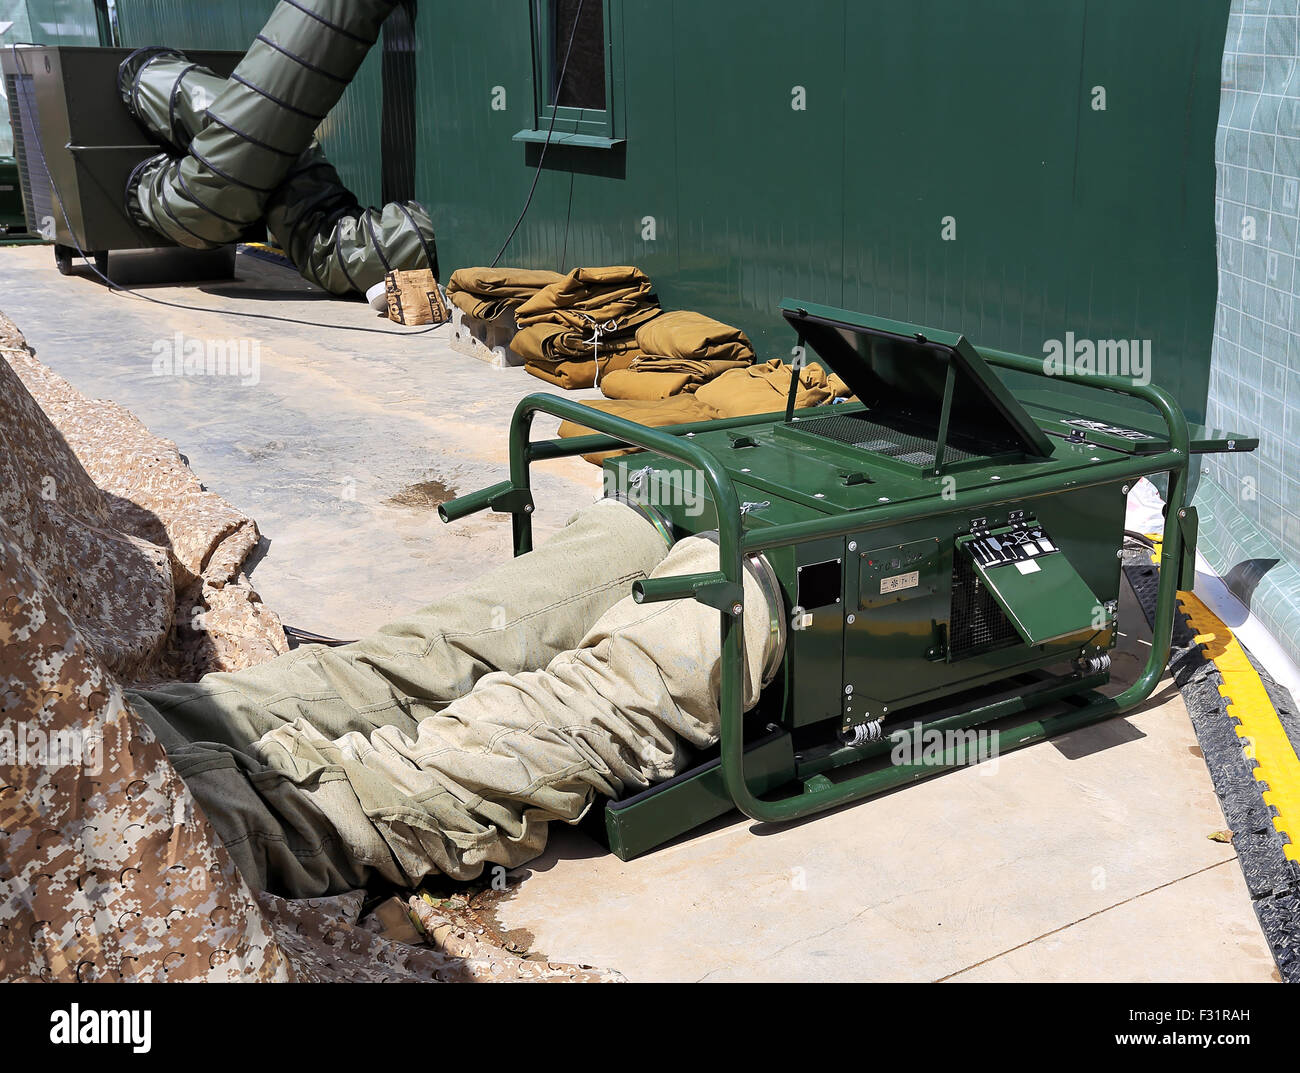 Field heating system for the army medical aid station in a tent & Field heating system for the army medical aid station in a tent ...